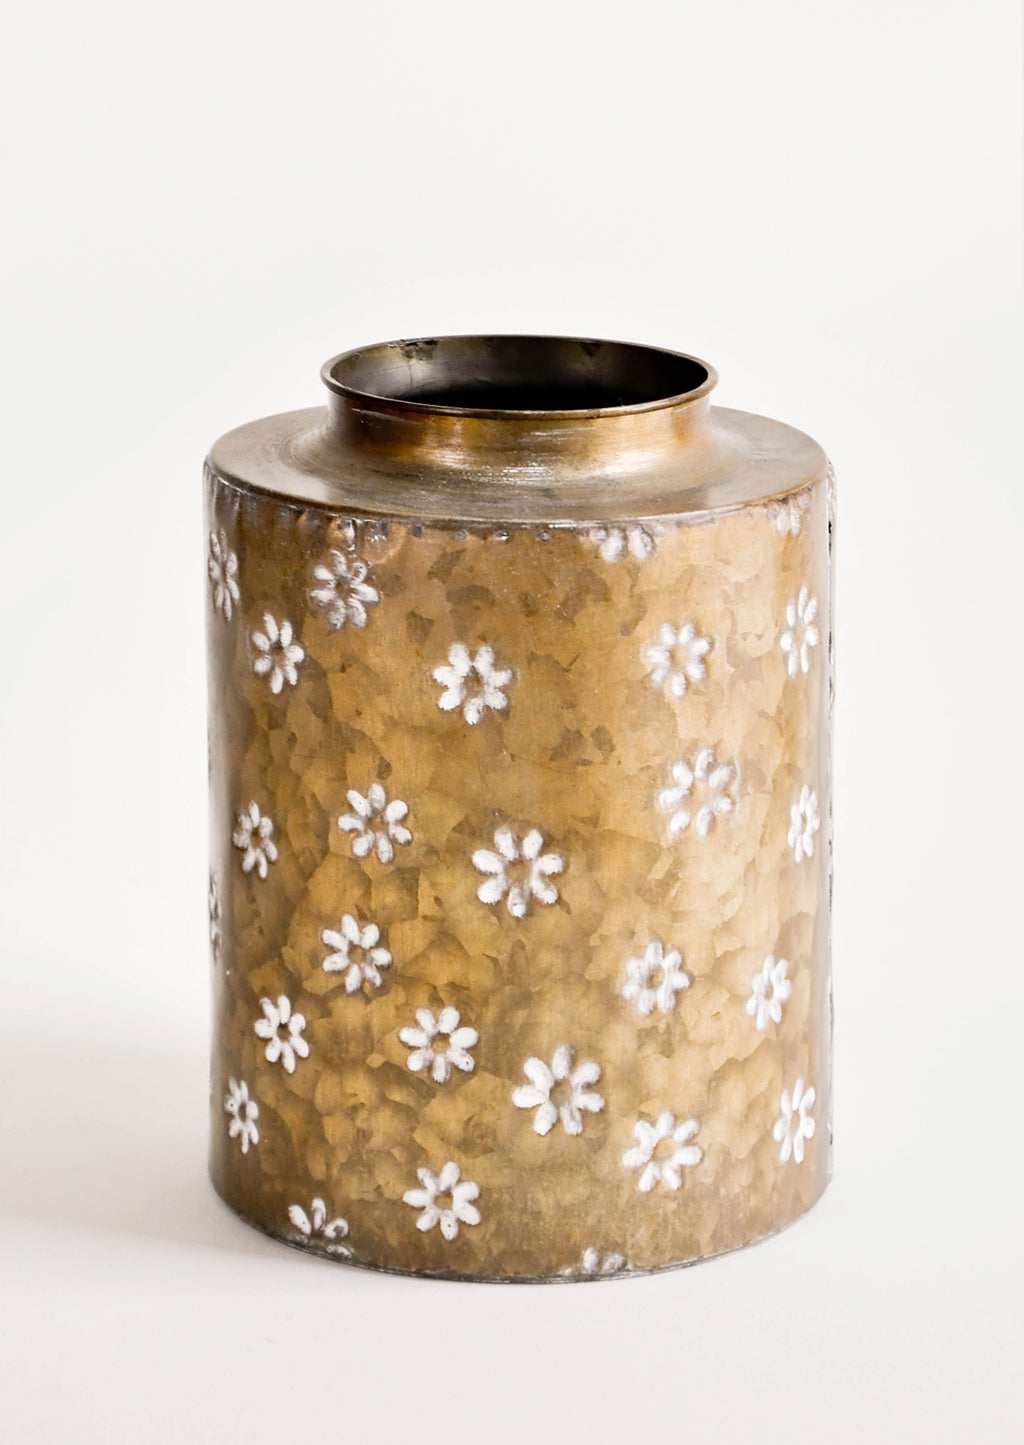 Brass [$42.00]: Wide and round brass metal vase with hammered texture and allover white floral print